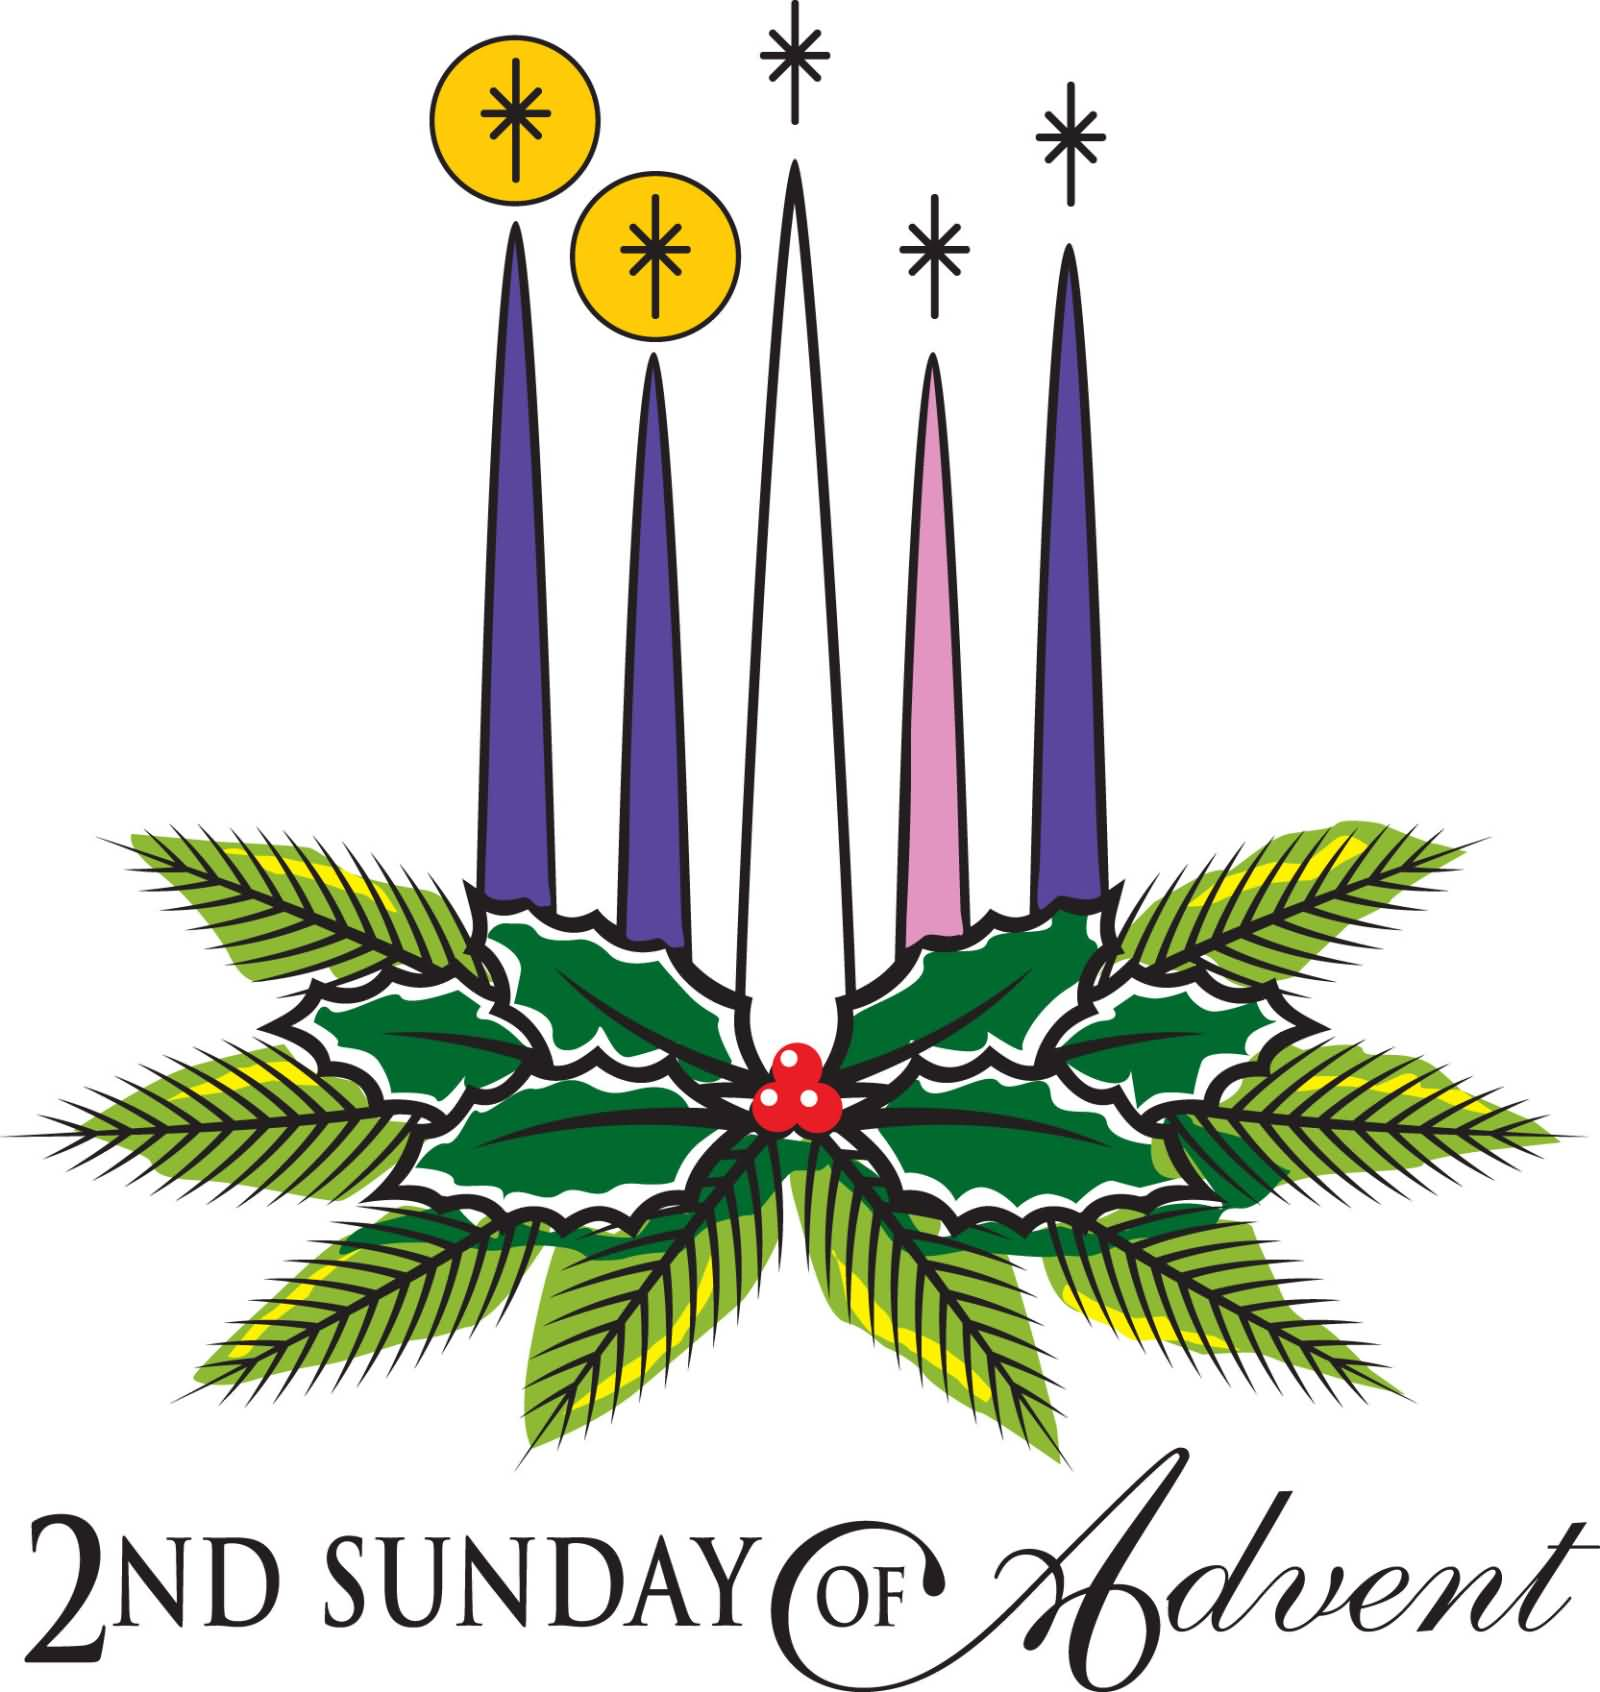 Second Sunday Of Advent Lighting Candles Clipart.